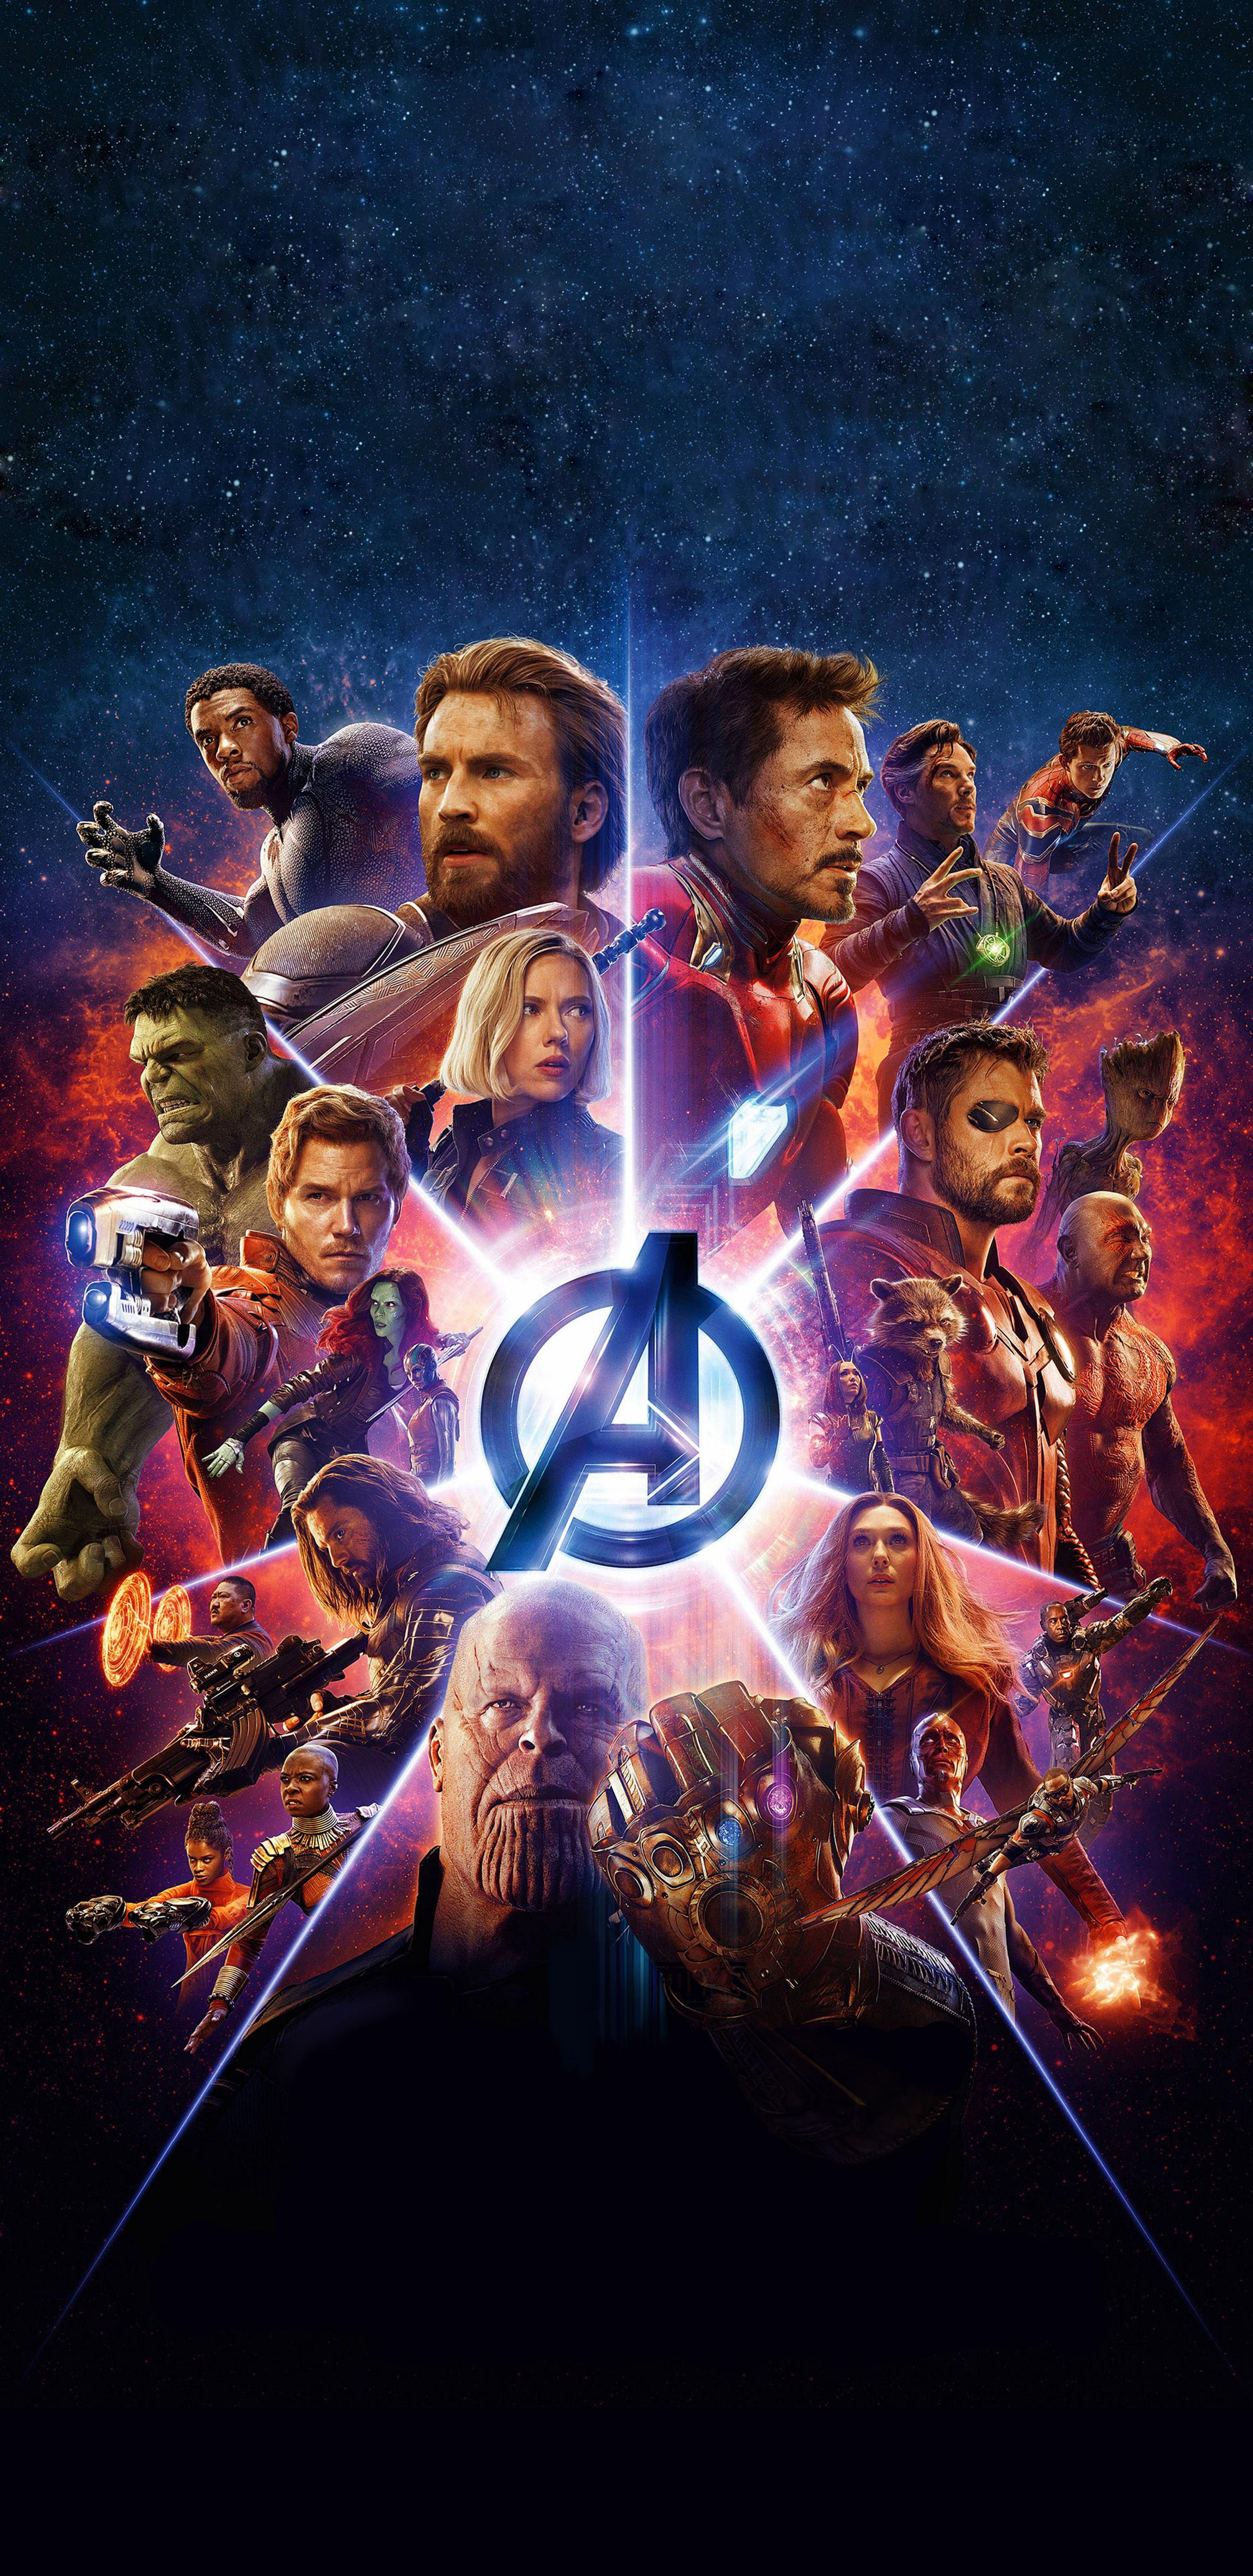 Free Download My Favorite Avengers Infinity War Poster